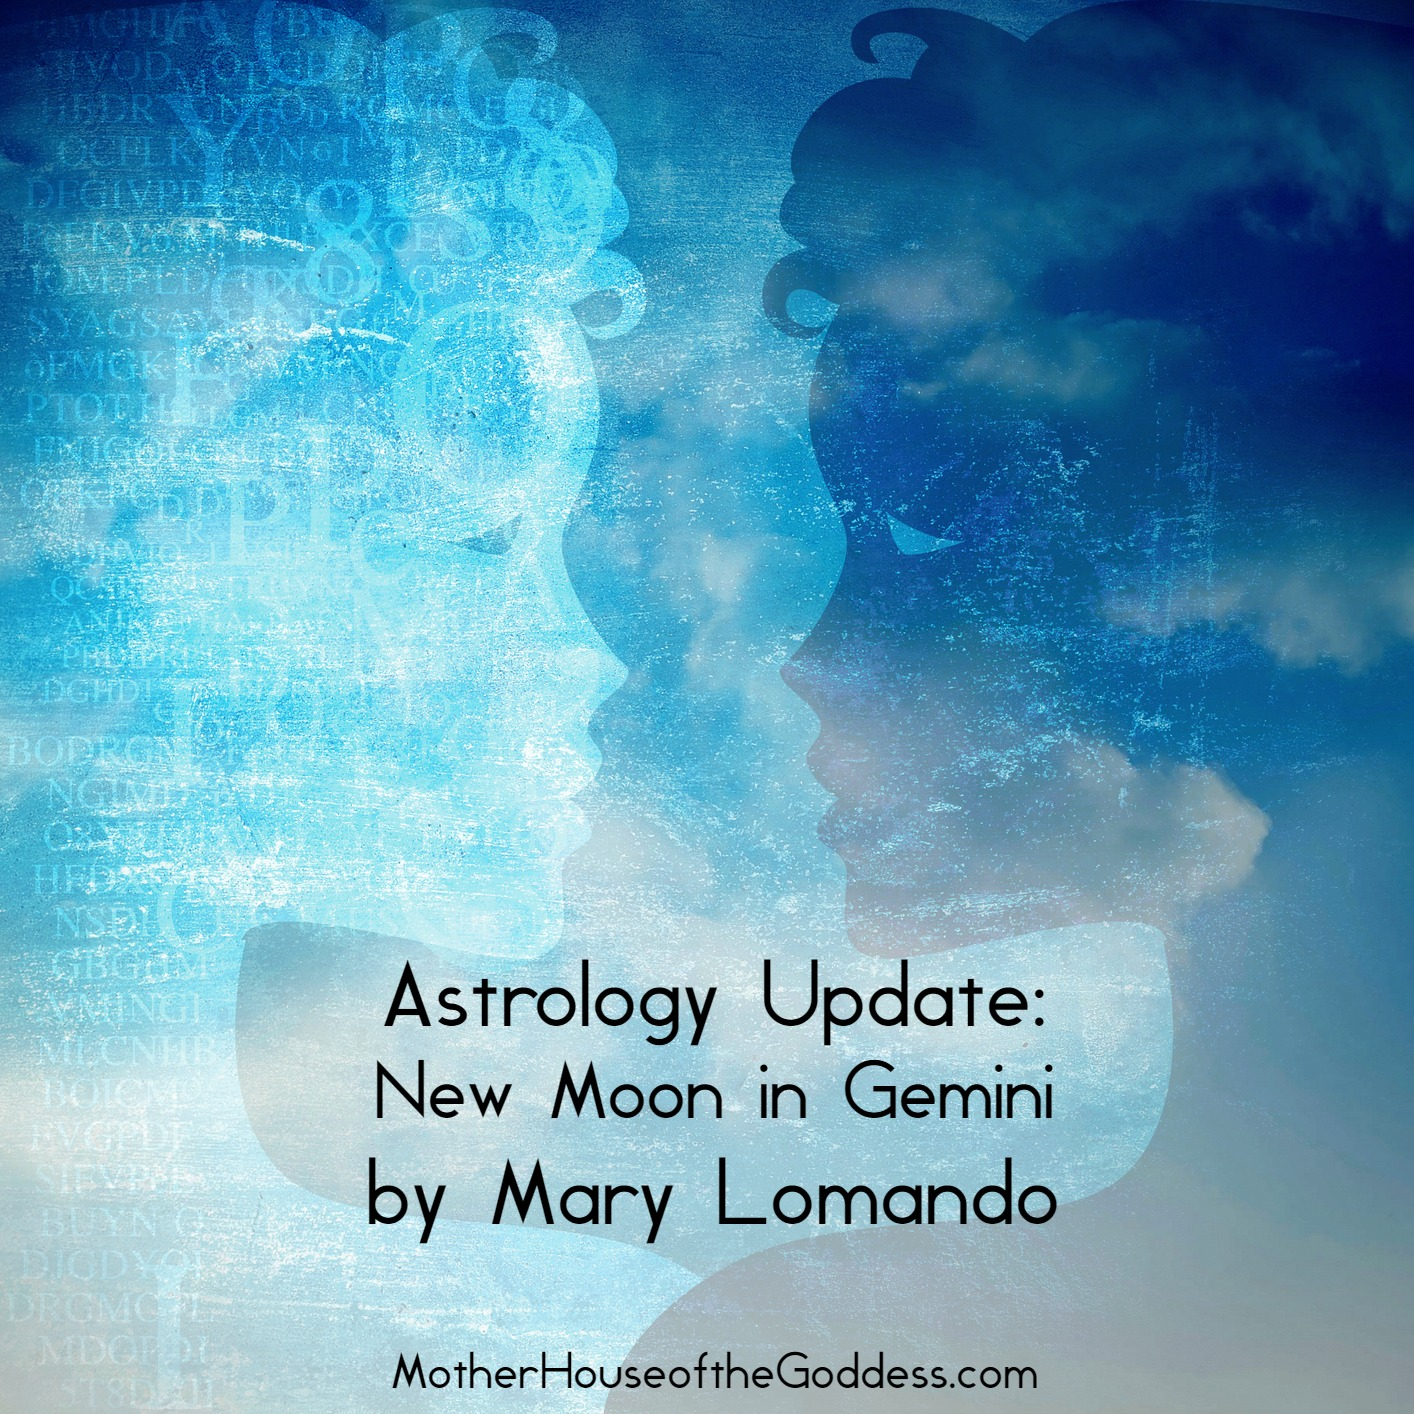 New Moon in Gemini 2014 | Sarah Fuhro Star-Flower Alchemy